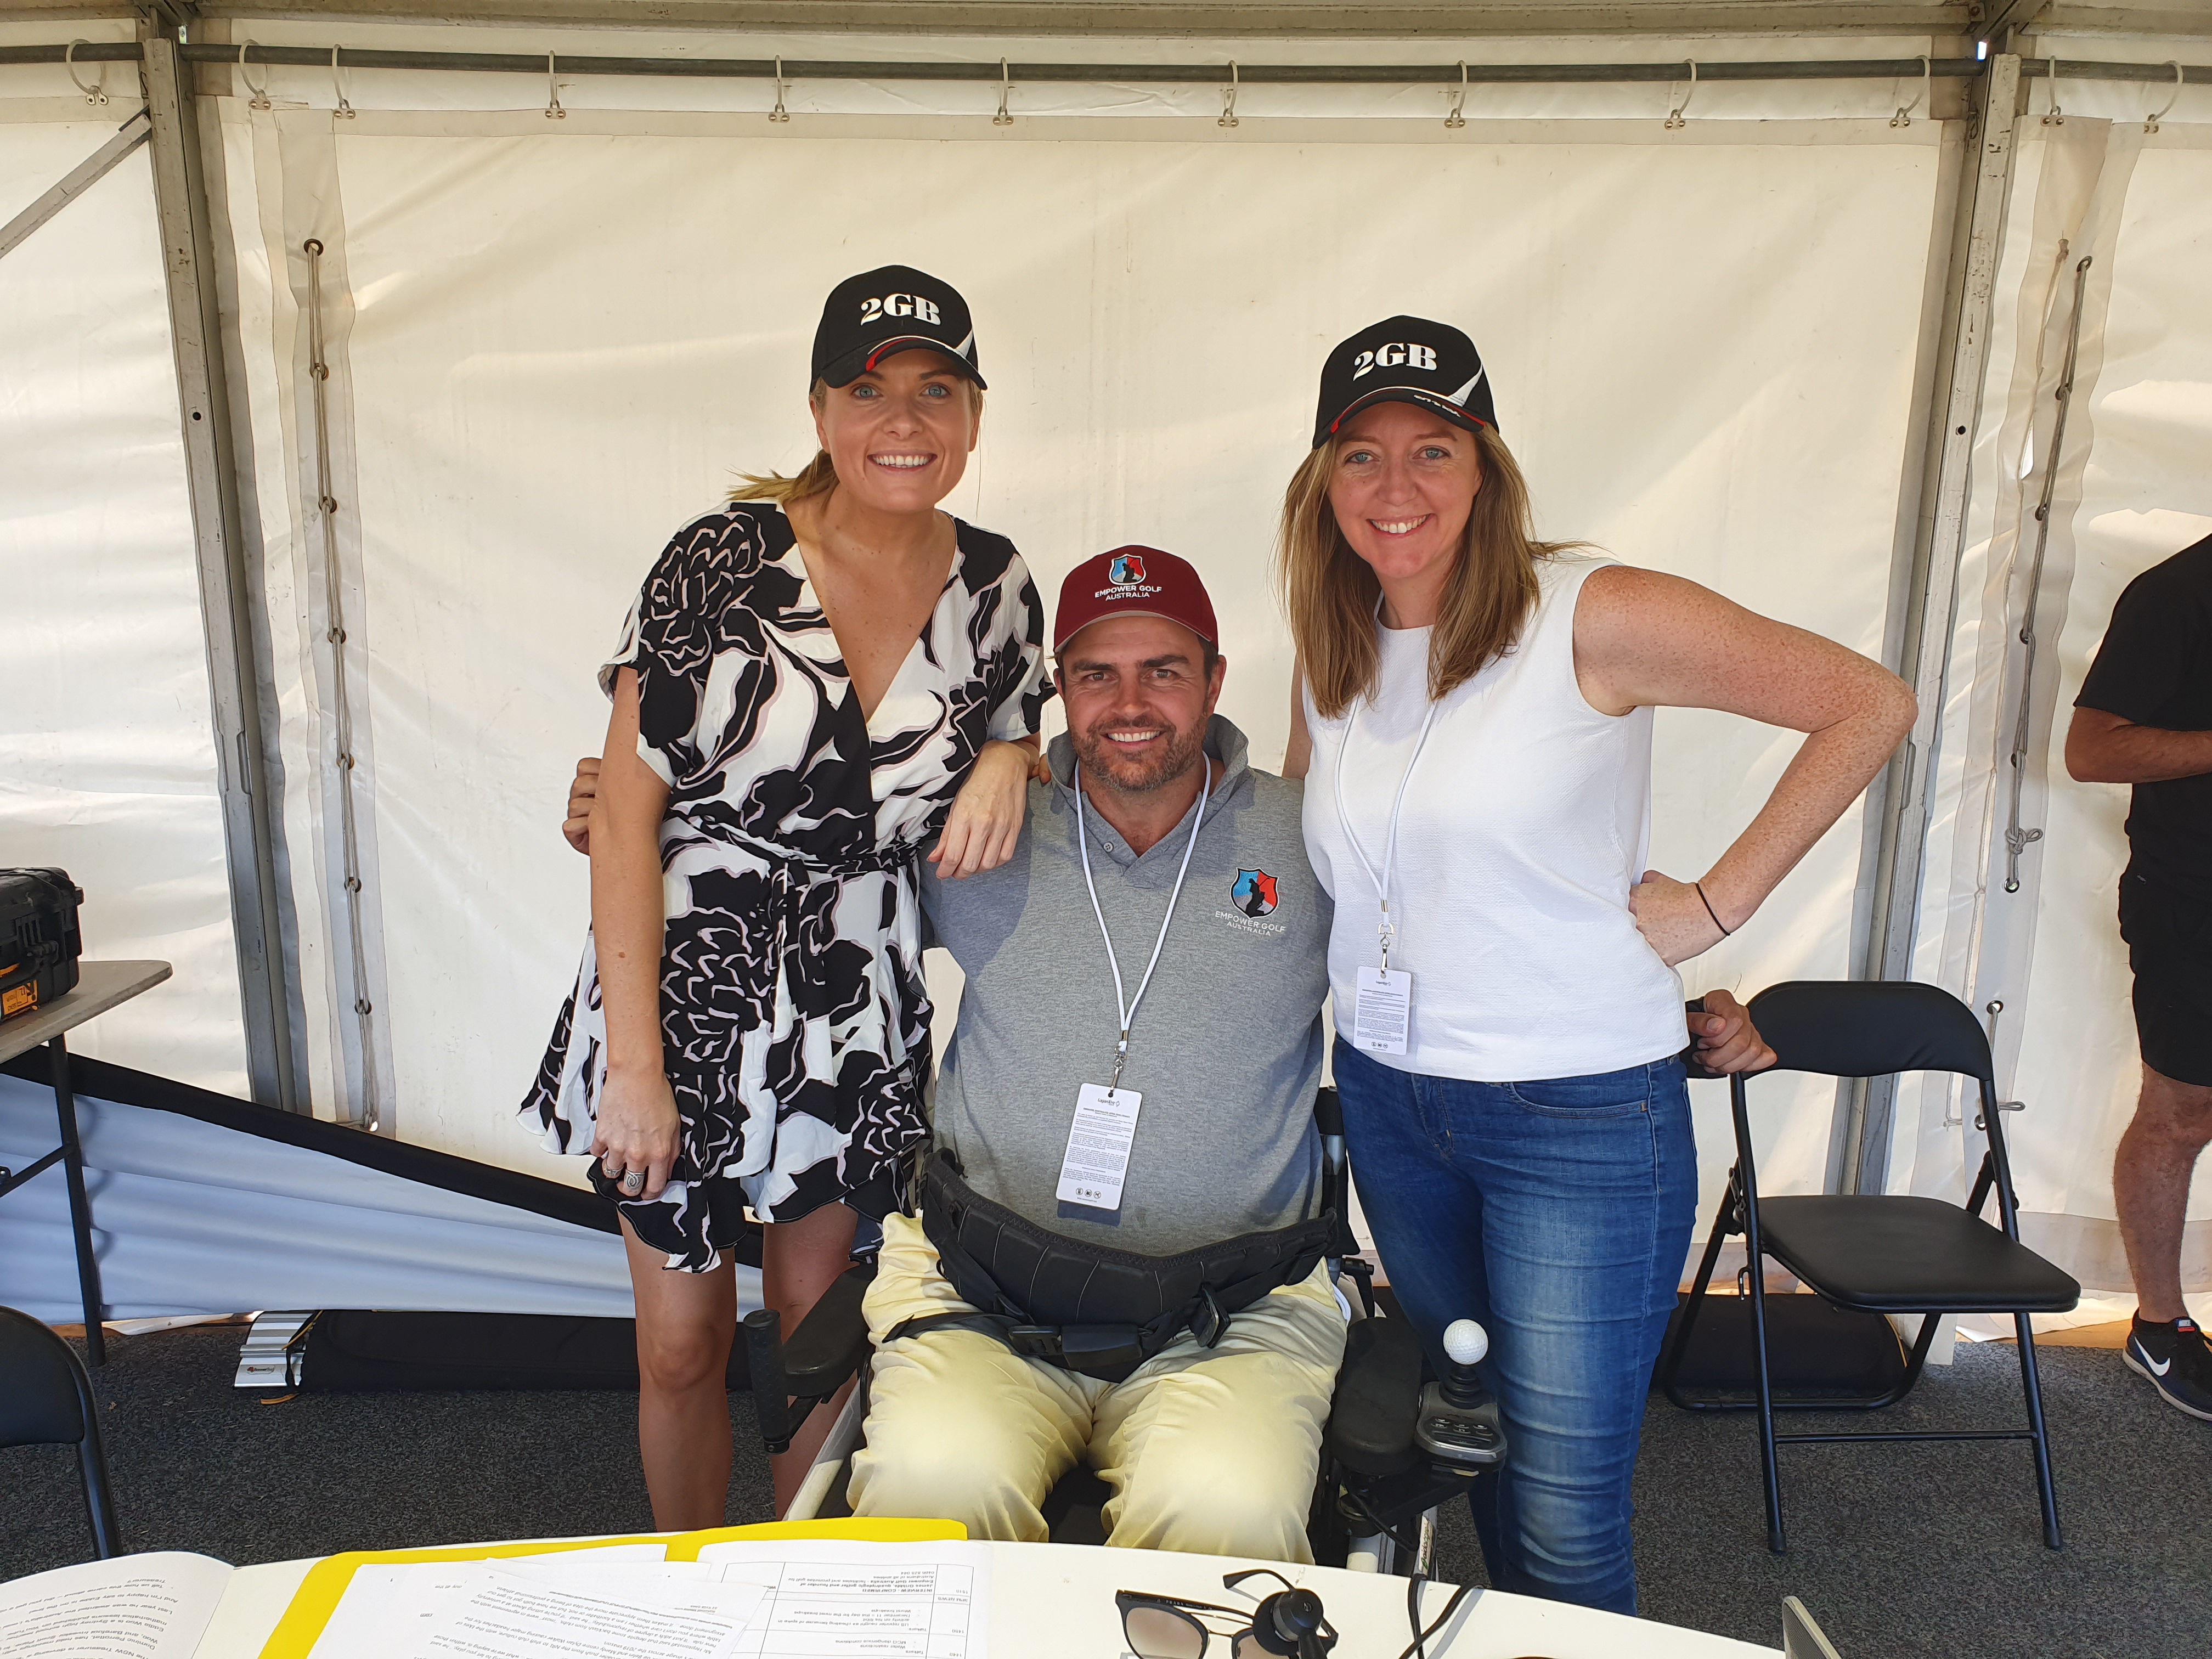 The inspiring story of James Gribble and Empower Golf